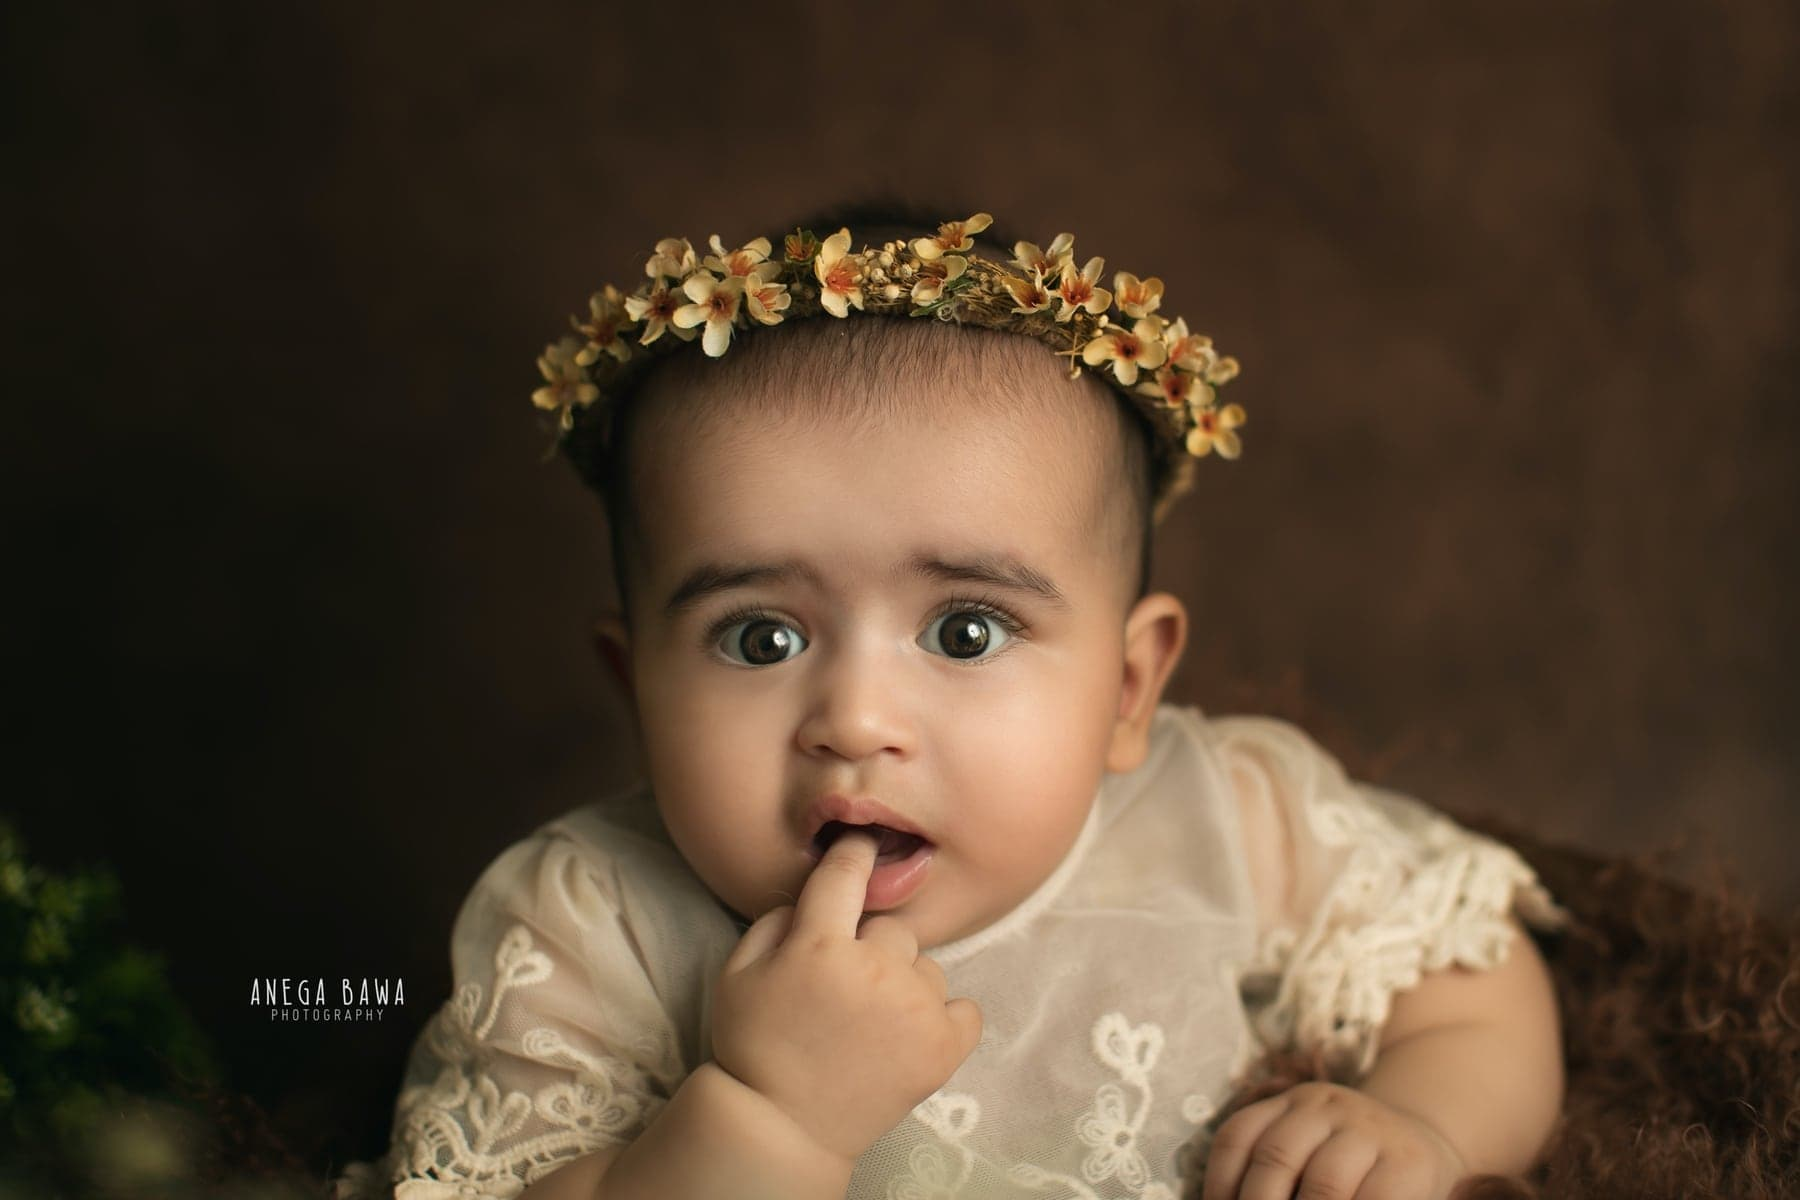 242113-brown-background-green-floral-baby-photography-delhi-5-6-7-months-baby-photoshoot-gurgaon-anega-bawa